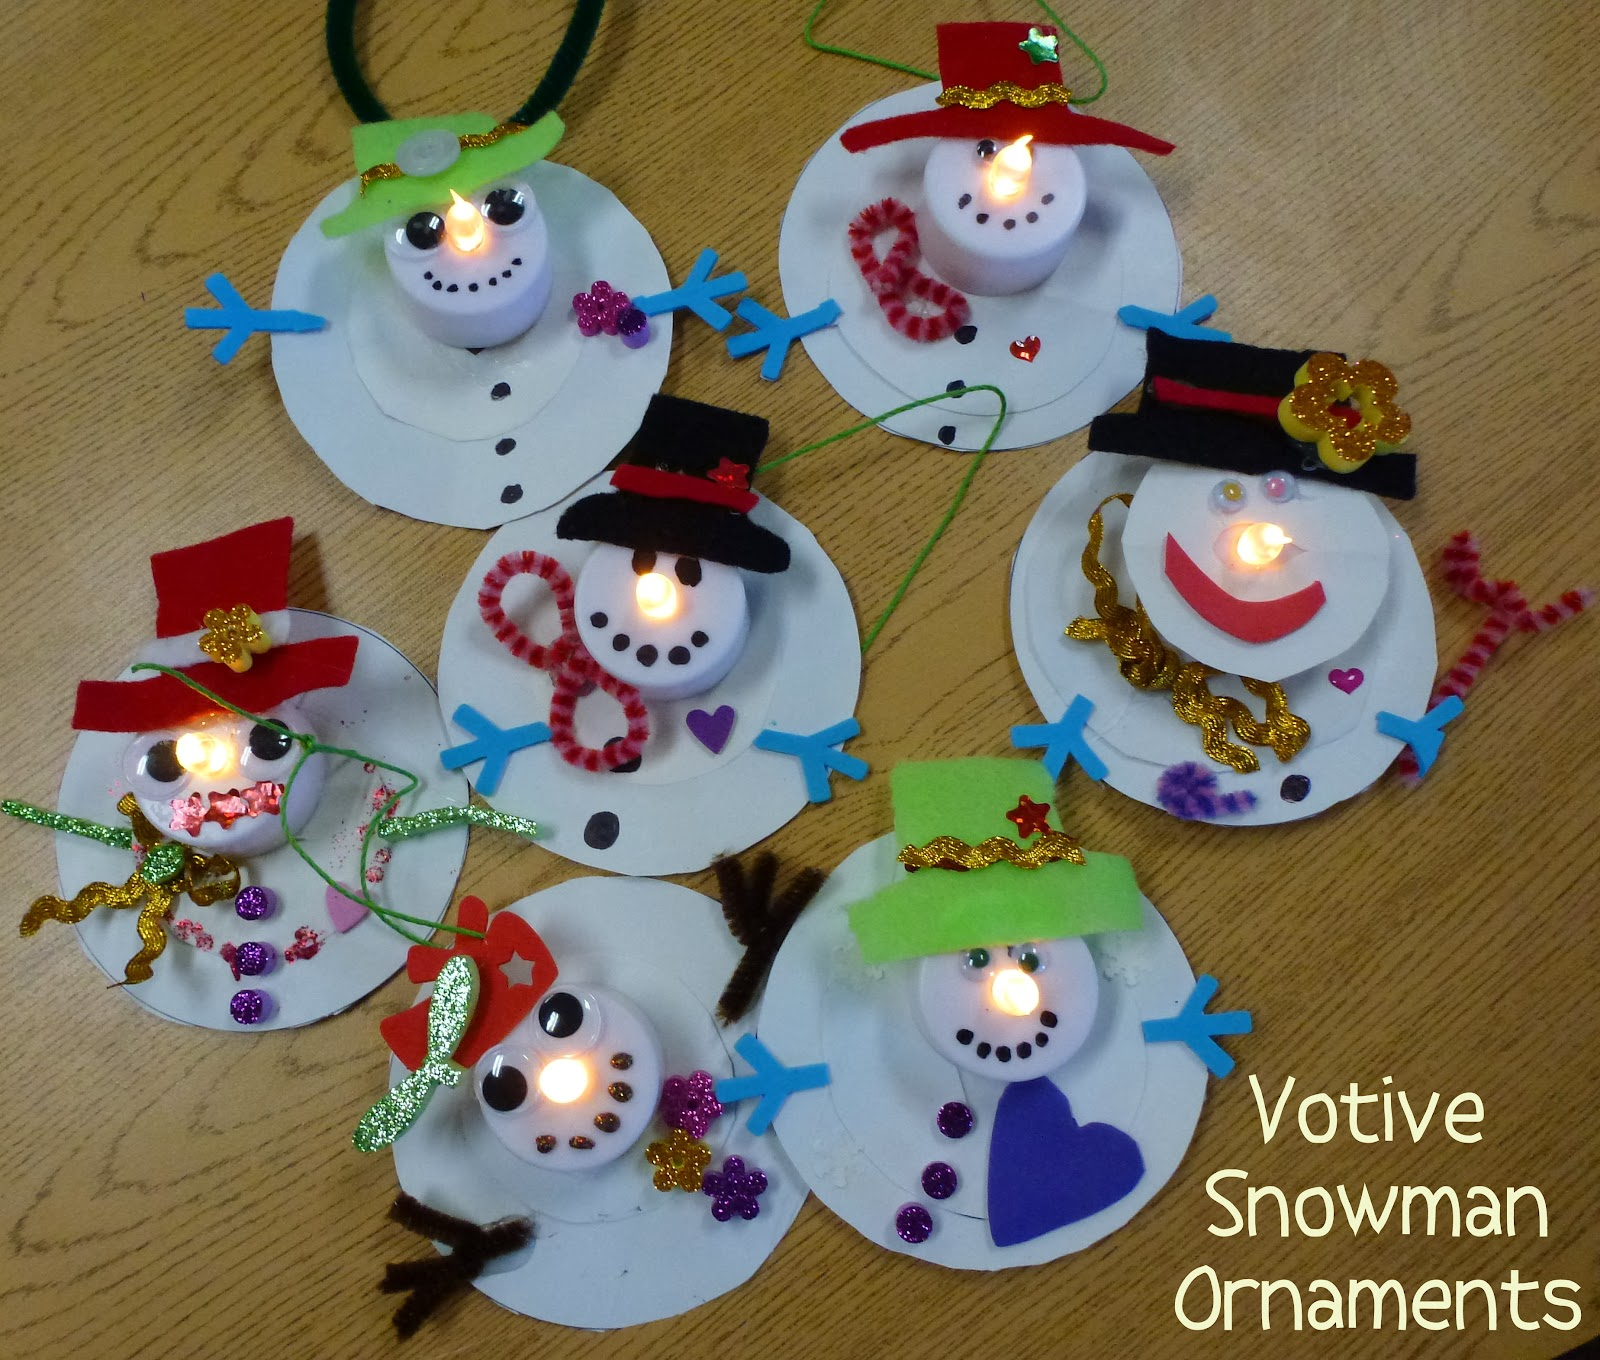 Christmas homemade decorations for kids - Votive Snowman Ornaments Choices For Children